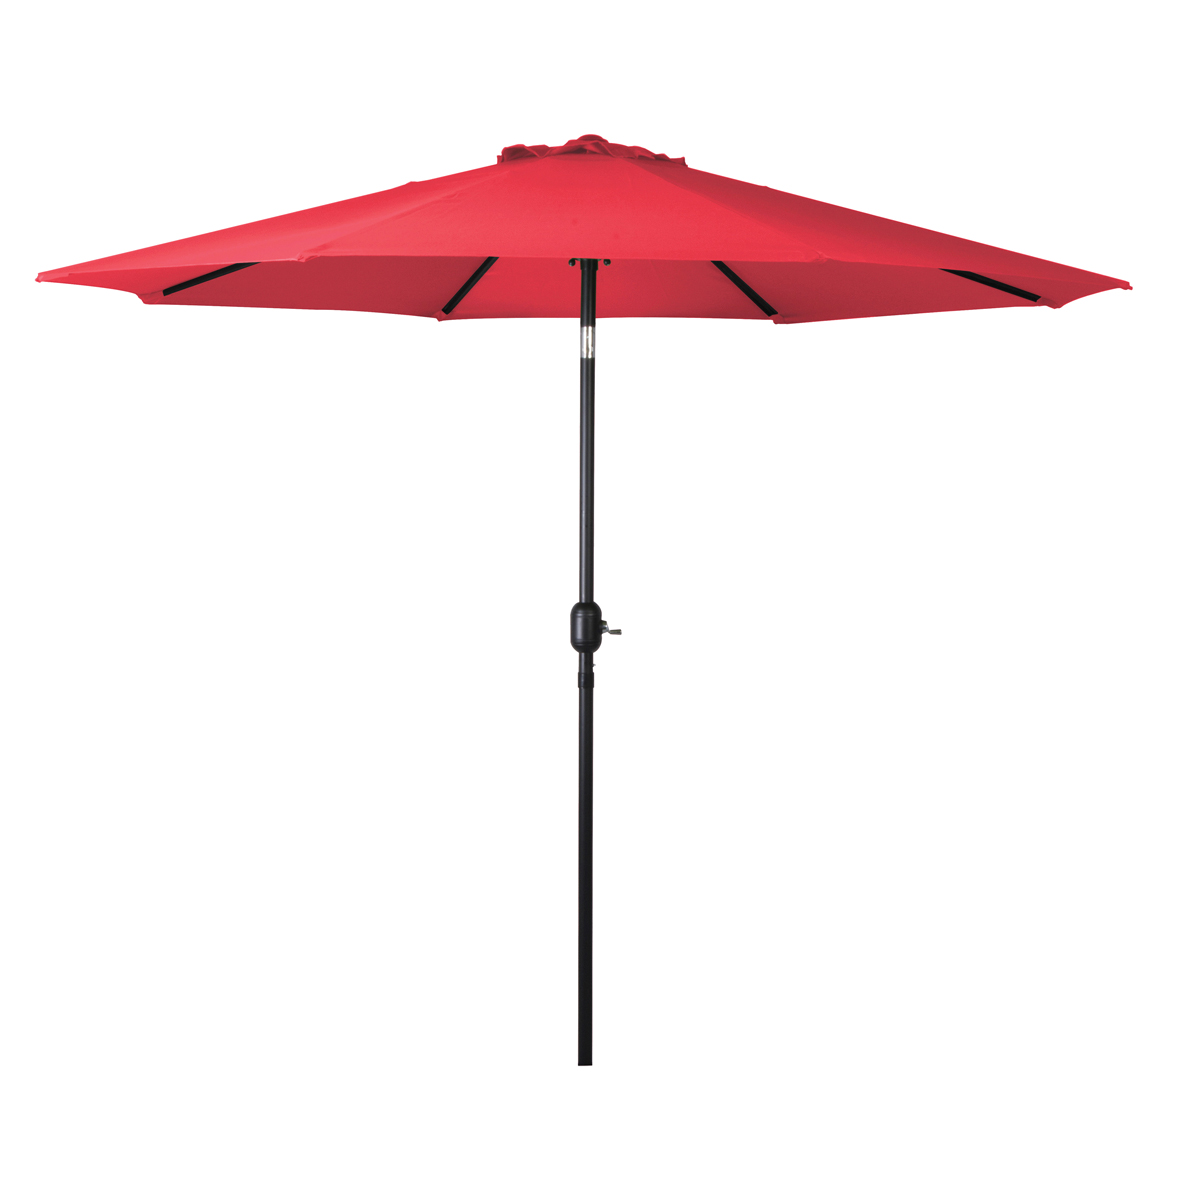 Picture of Seasonal Trends 69867 Crank Umbrella, 92.9 in H, 107.9 in W Canopy, 107.9 in L Canopy, Round Canopy, Steel Frame